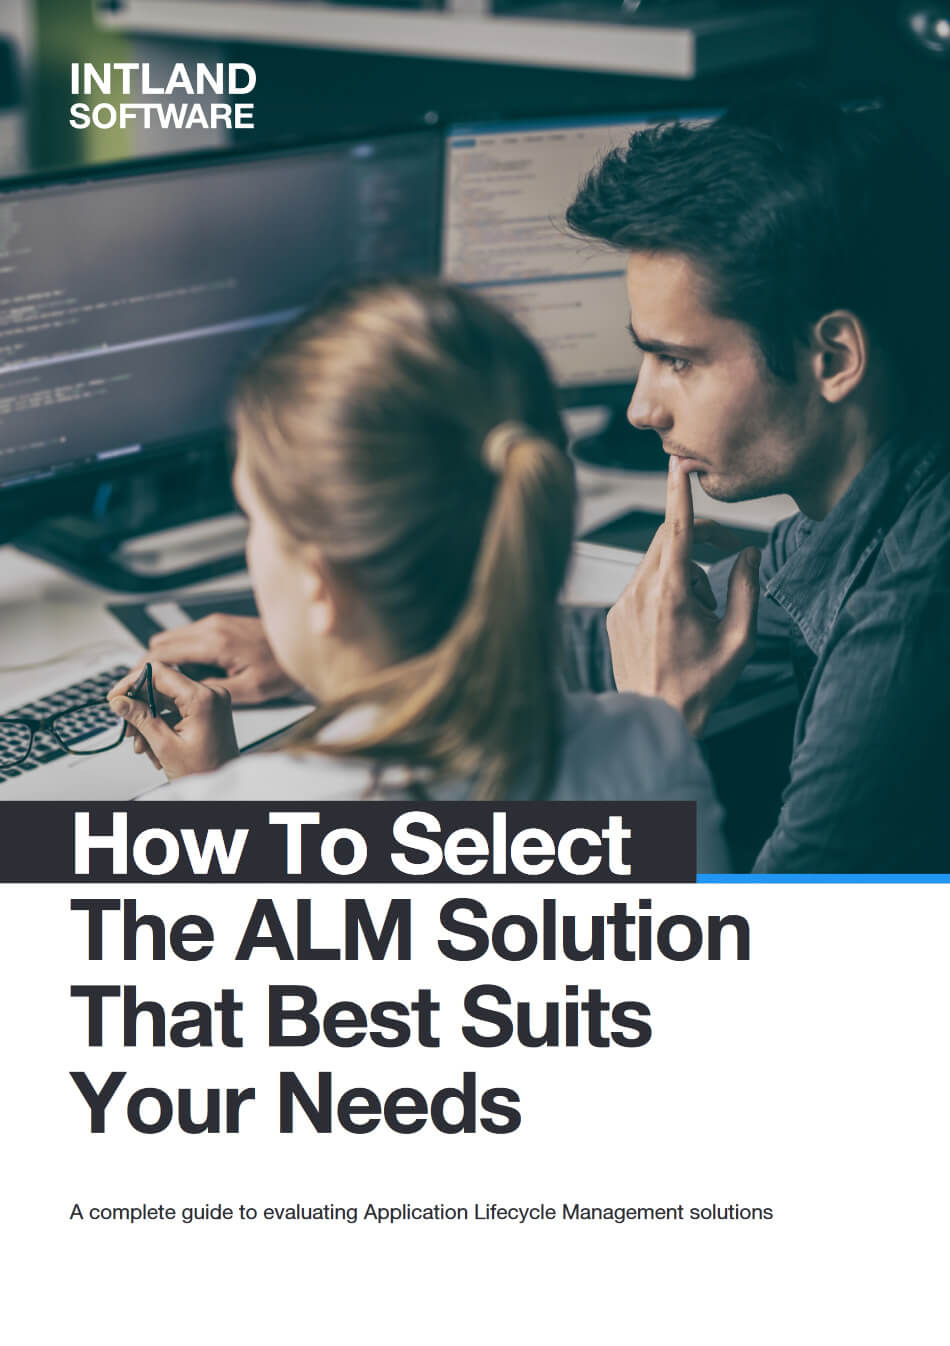 how_to_select_alm_solution_2020_cover Looking for the right ALM platform?